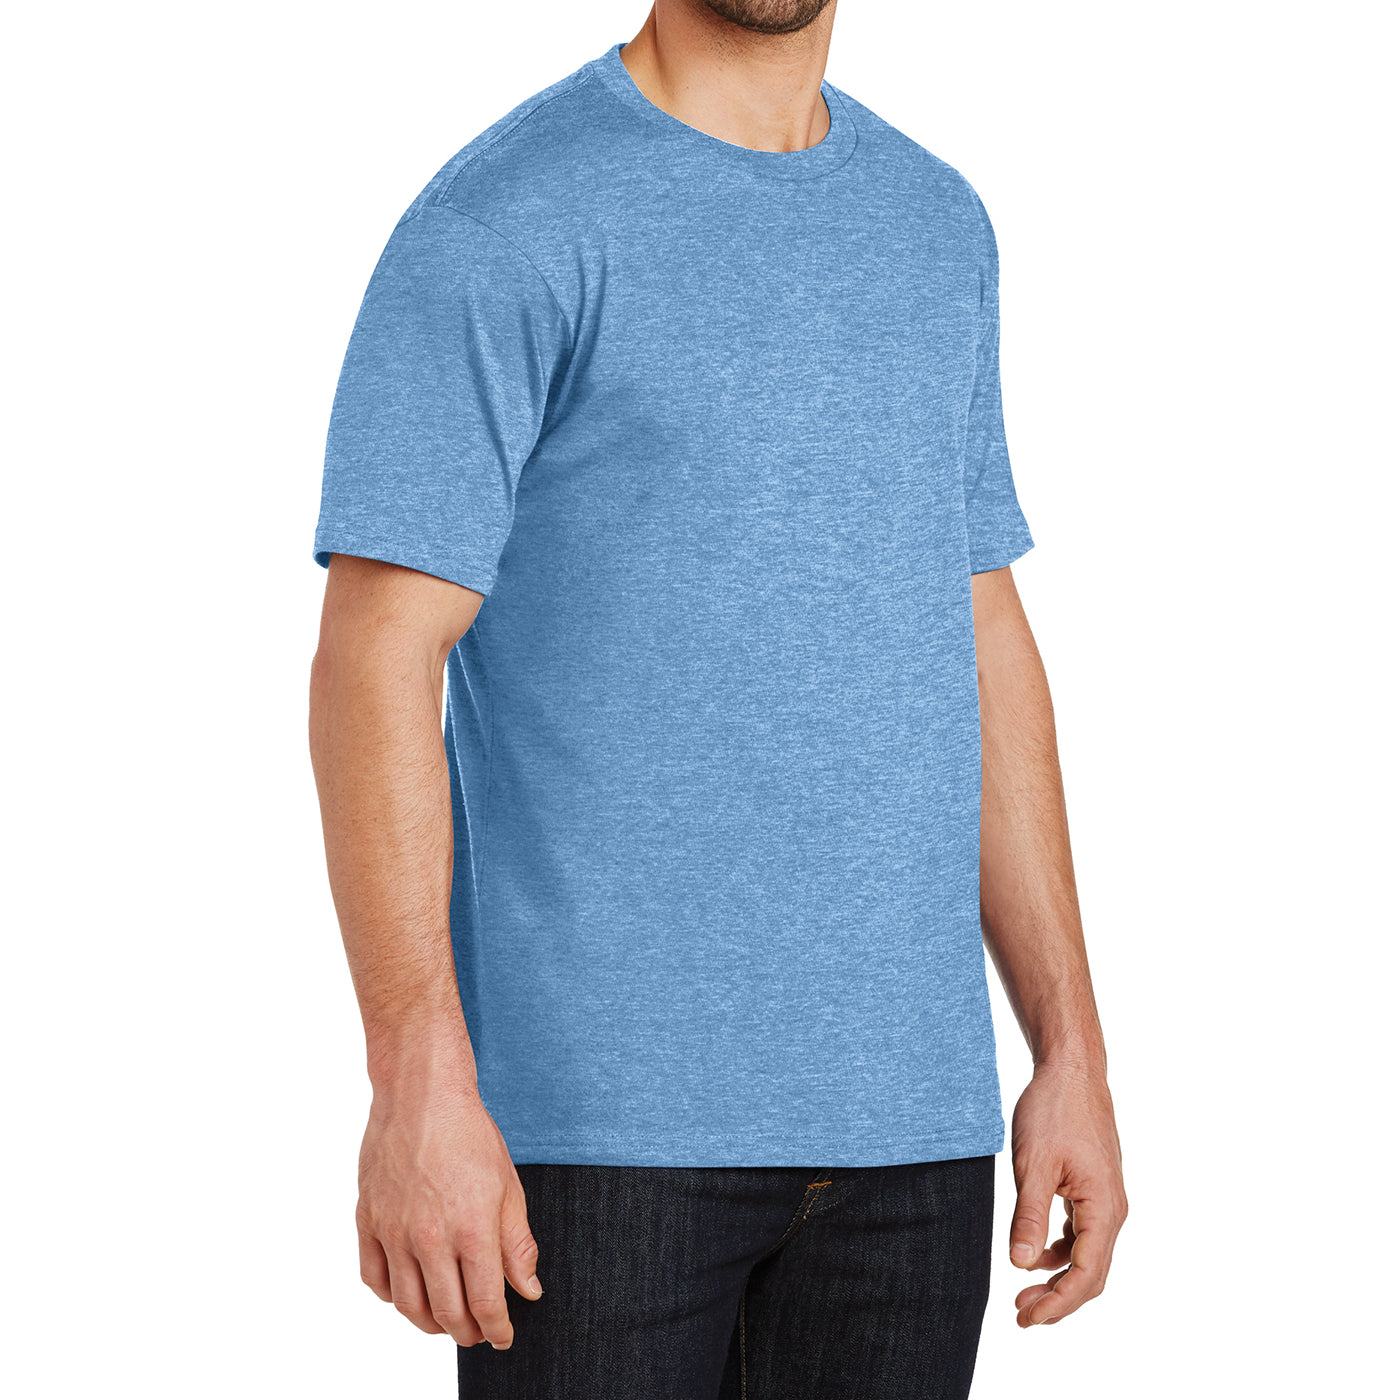 Mens Perfect Weight Crew Tee - Clean Denim- Side